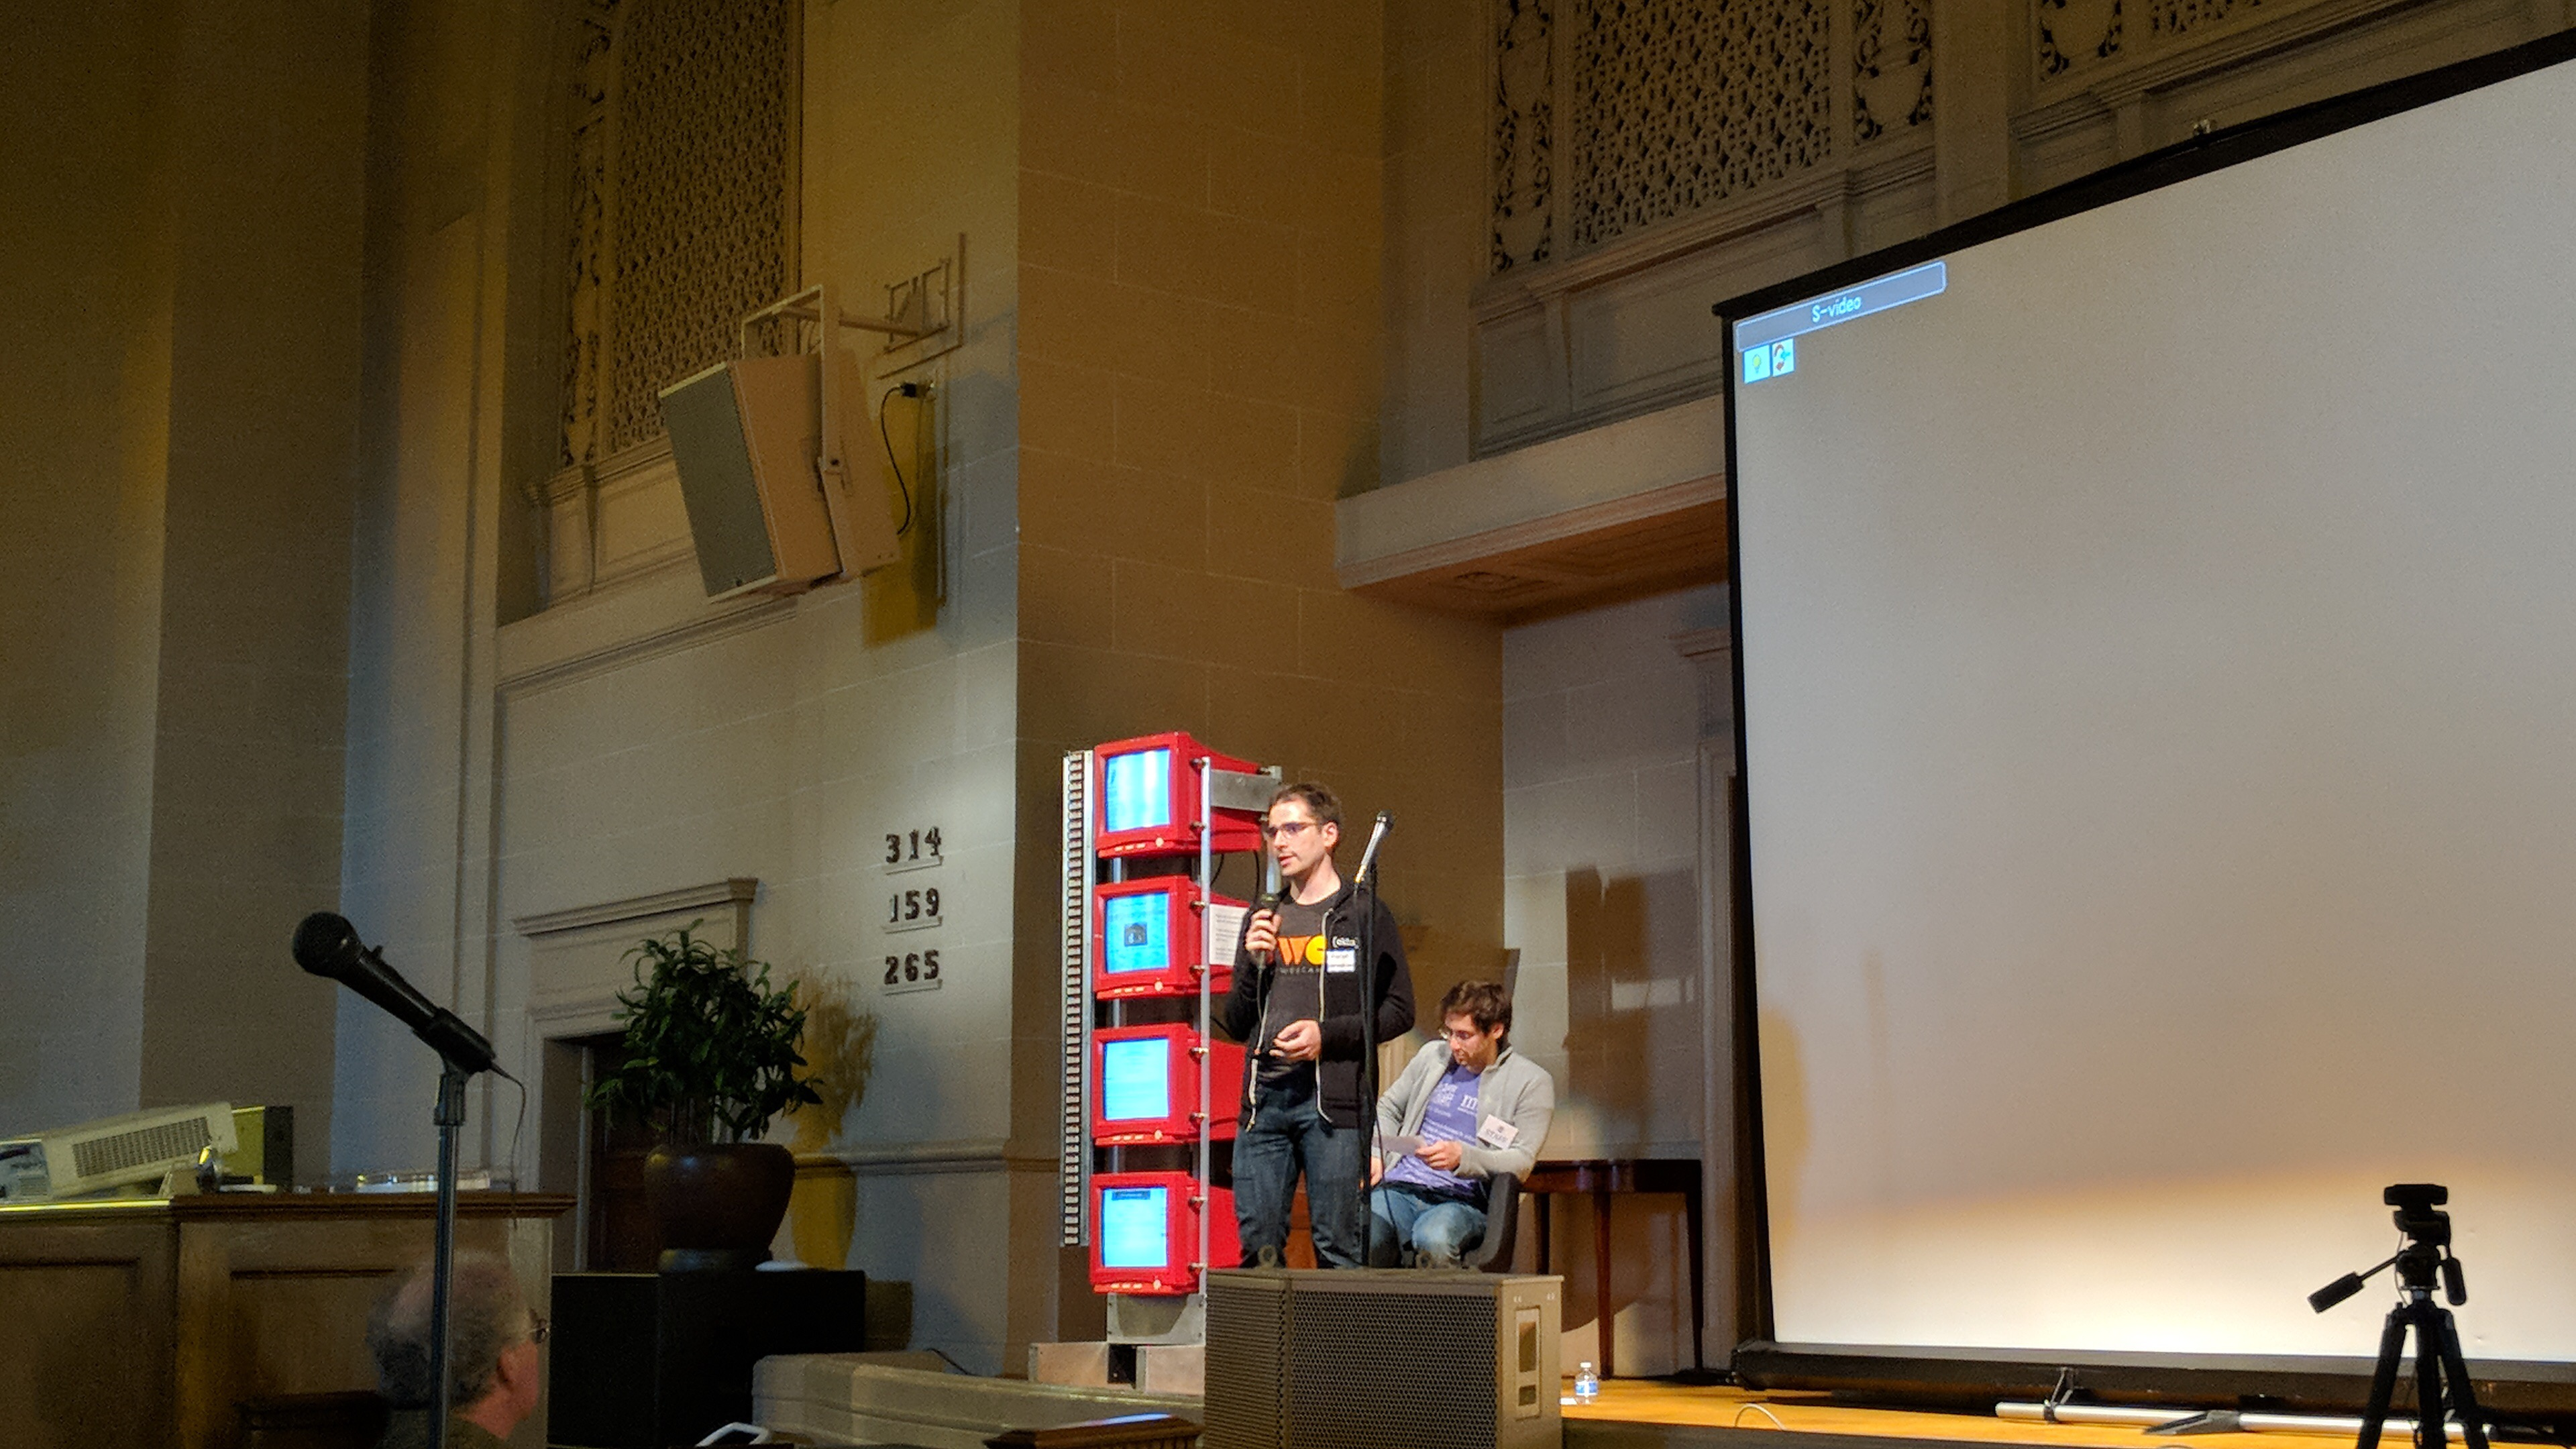 Aaron Parecki giving a lightning talk on Indie Auth at the Decentralized Web Meetup at the Internet Archive